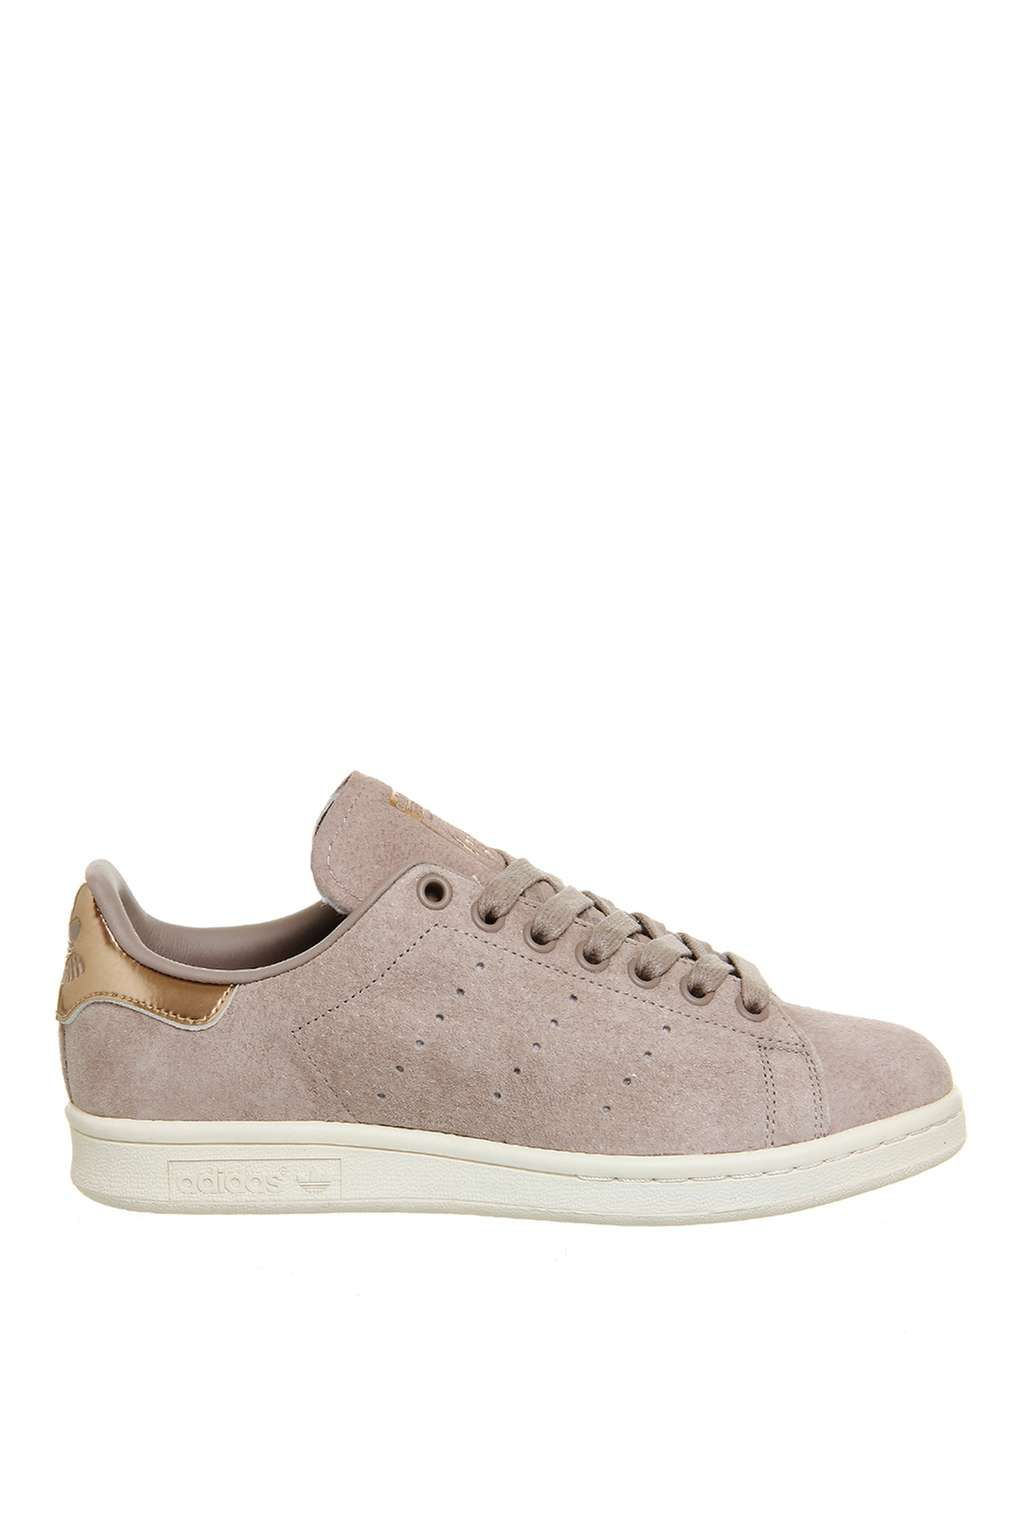 4aef9492529   Stan Smith Trainers by Adidas Originals - Shoes- Topshop Europe